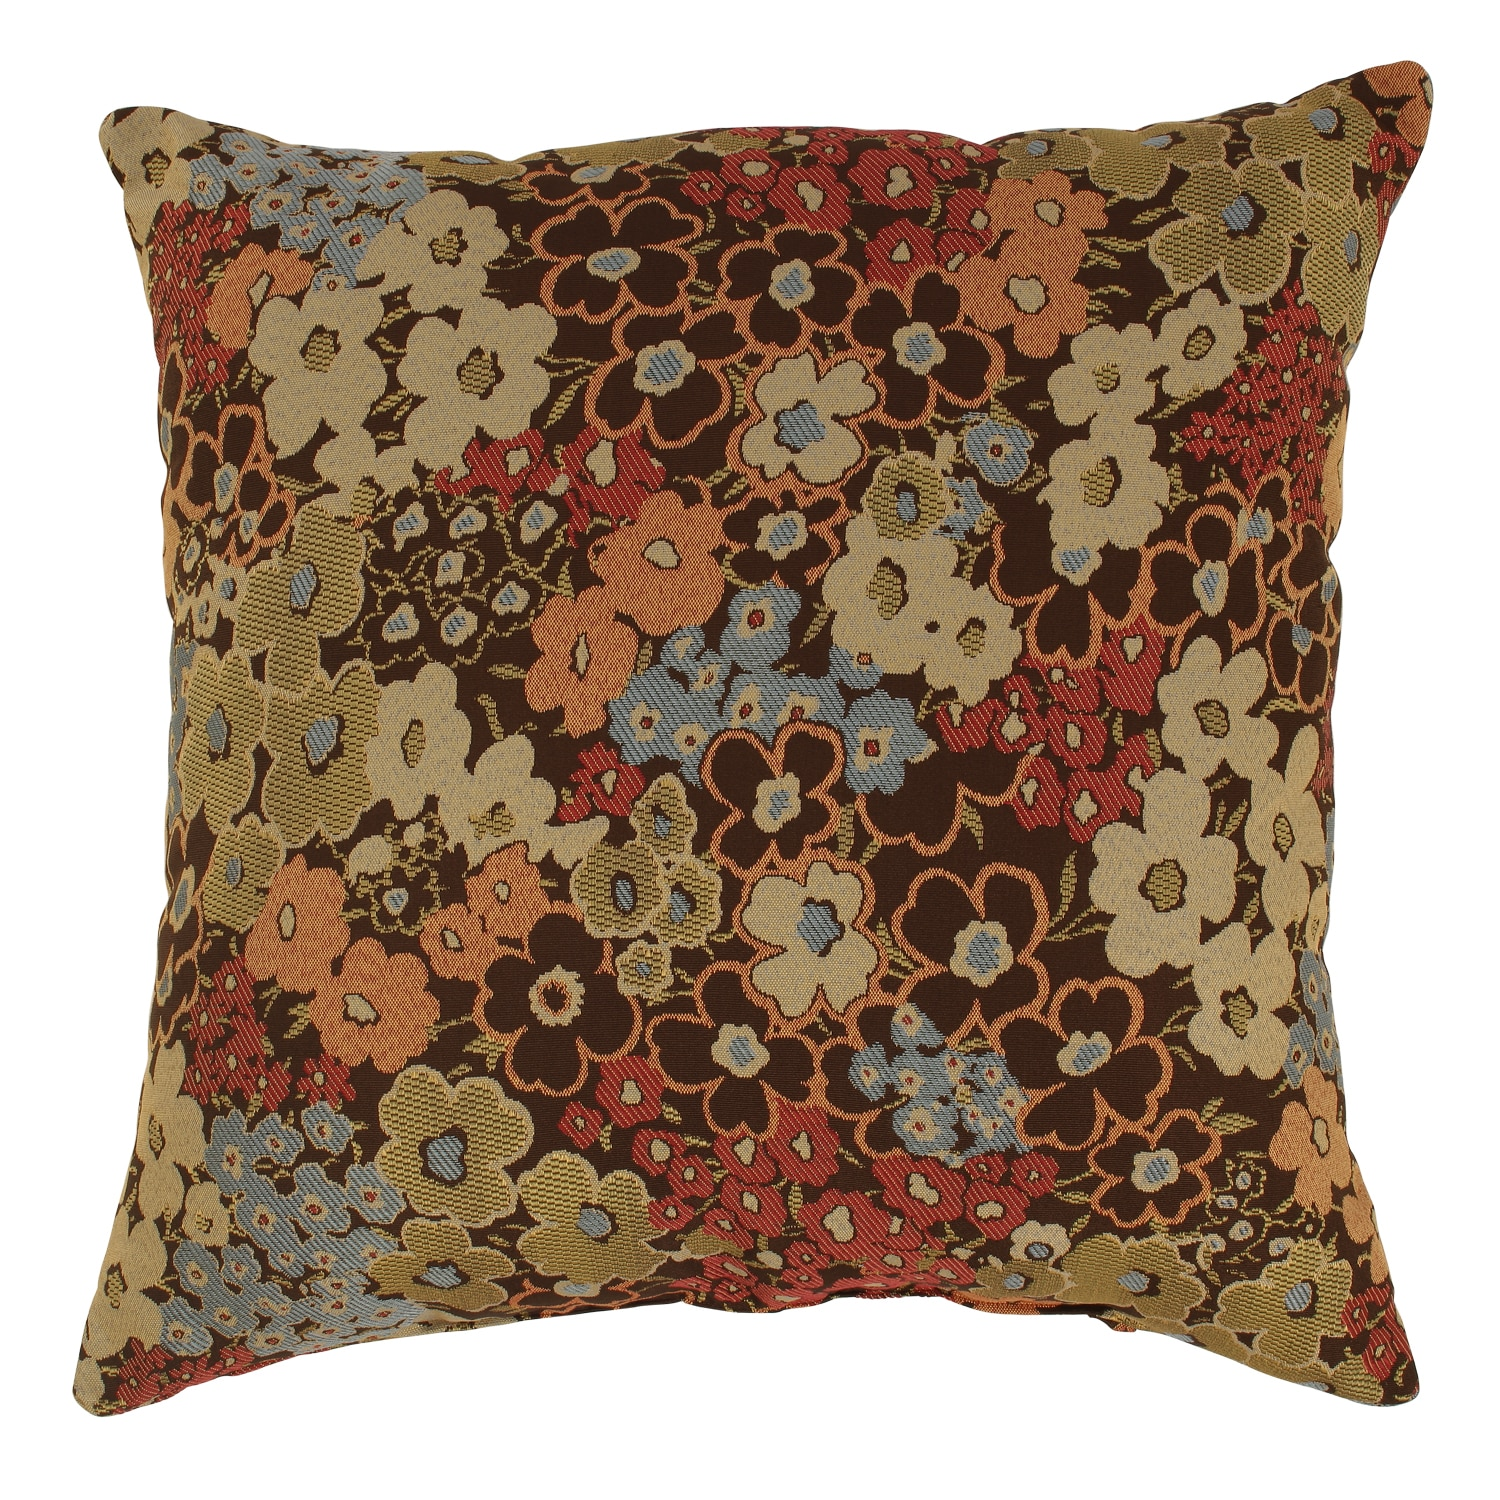 'Meadow' Brown Floral Floor Pillow